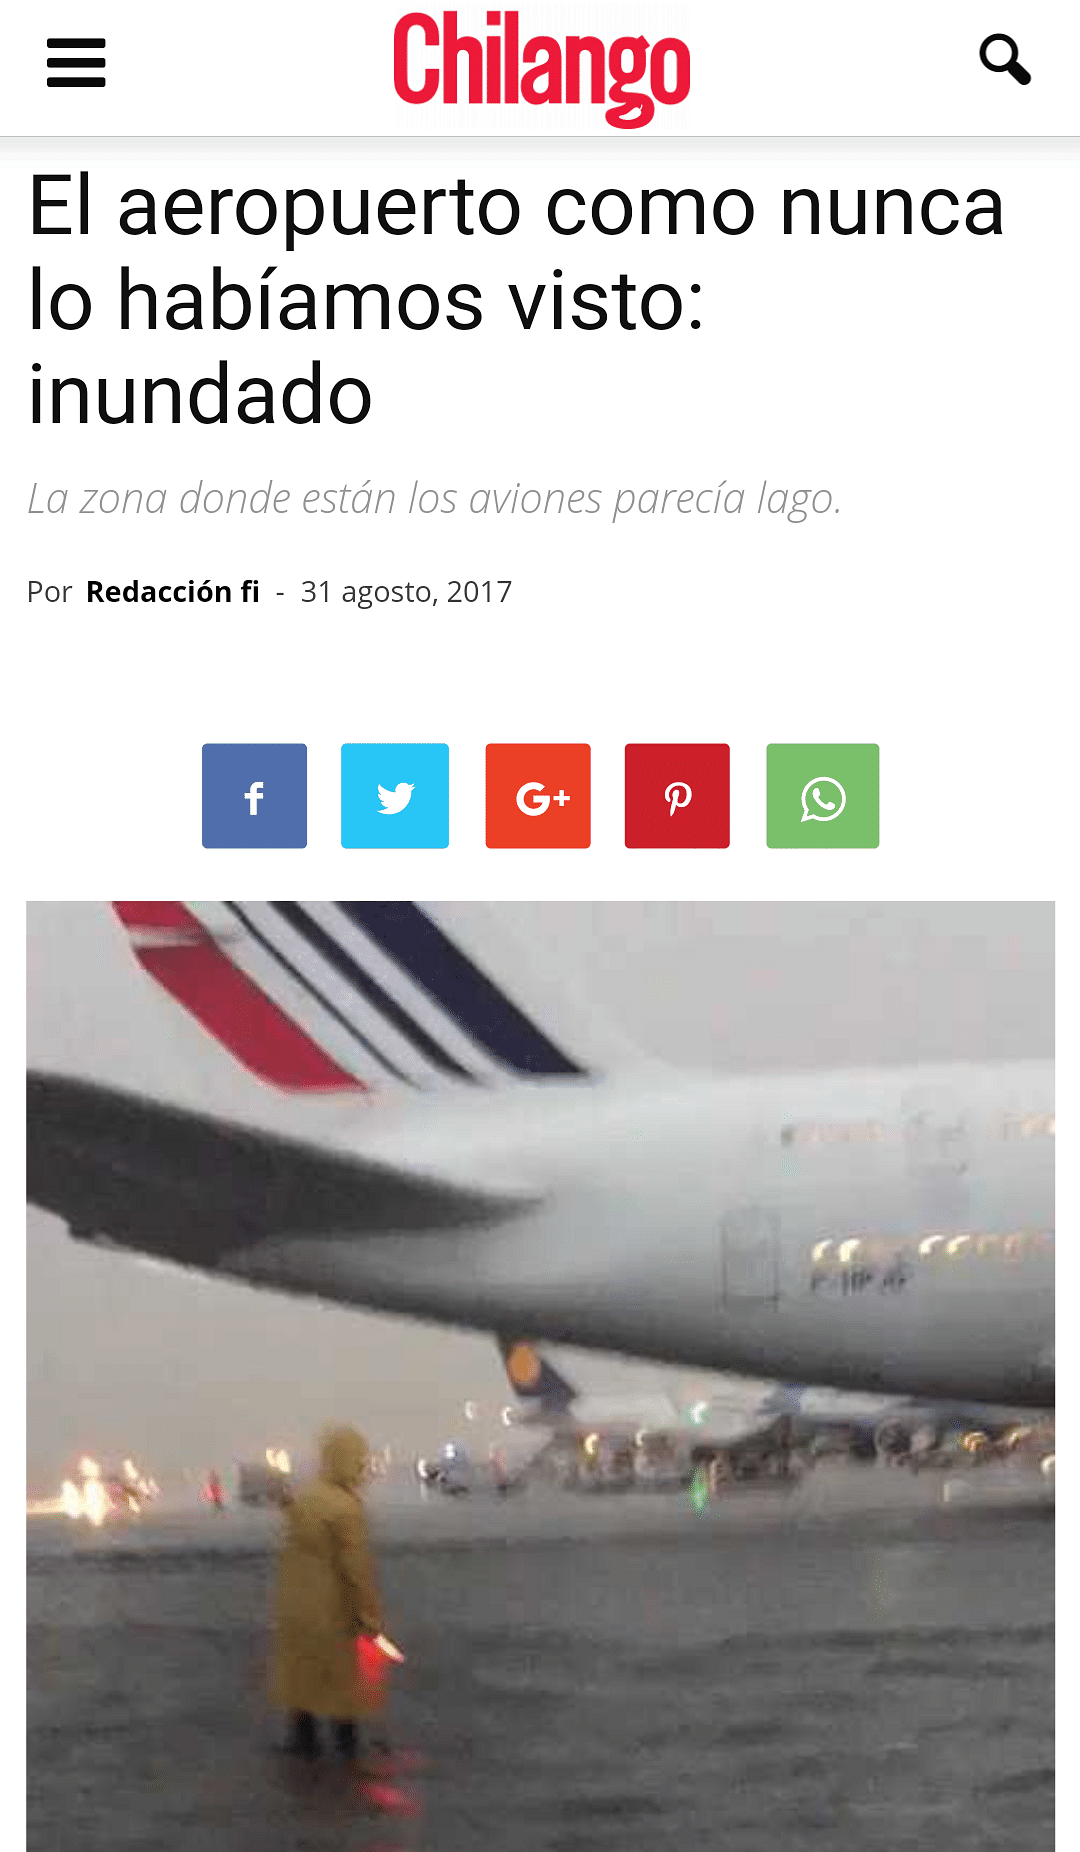 Screengrab of the article published about the waterlogging in  Benito Juárez International Airport in Mexico City.